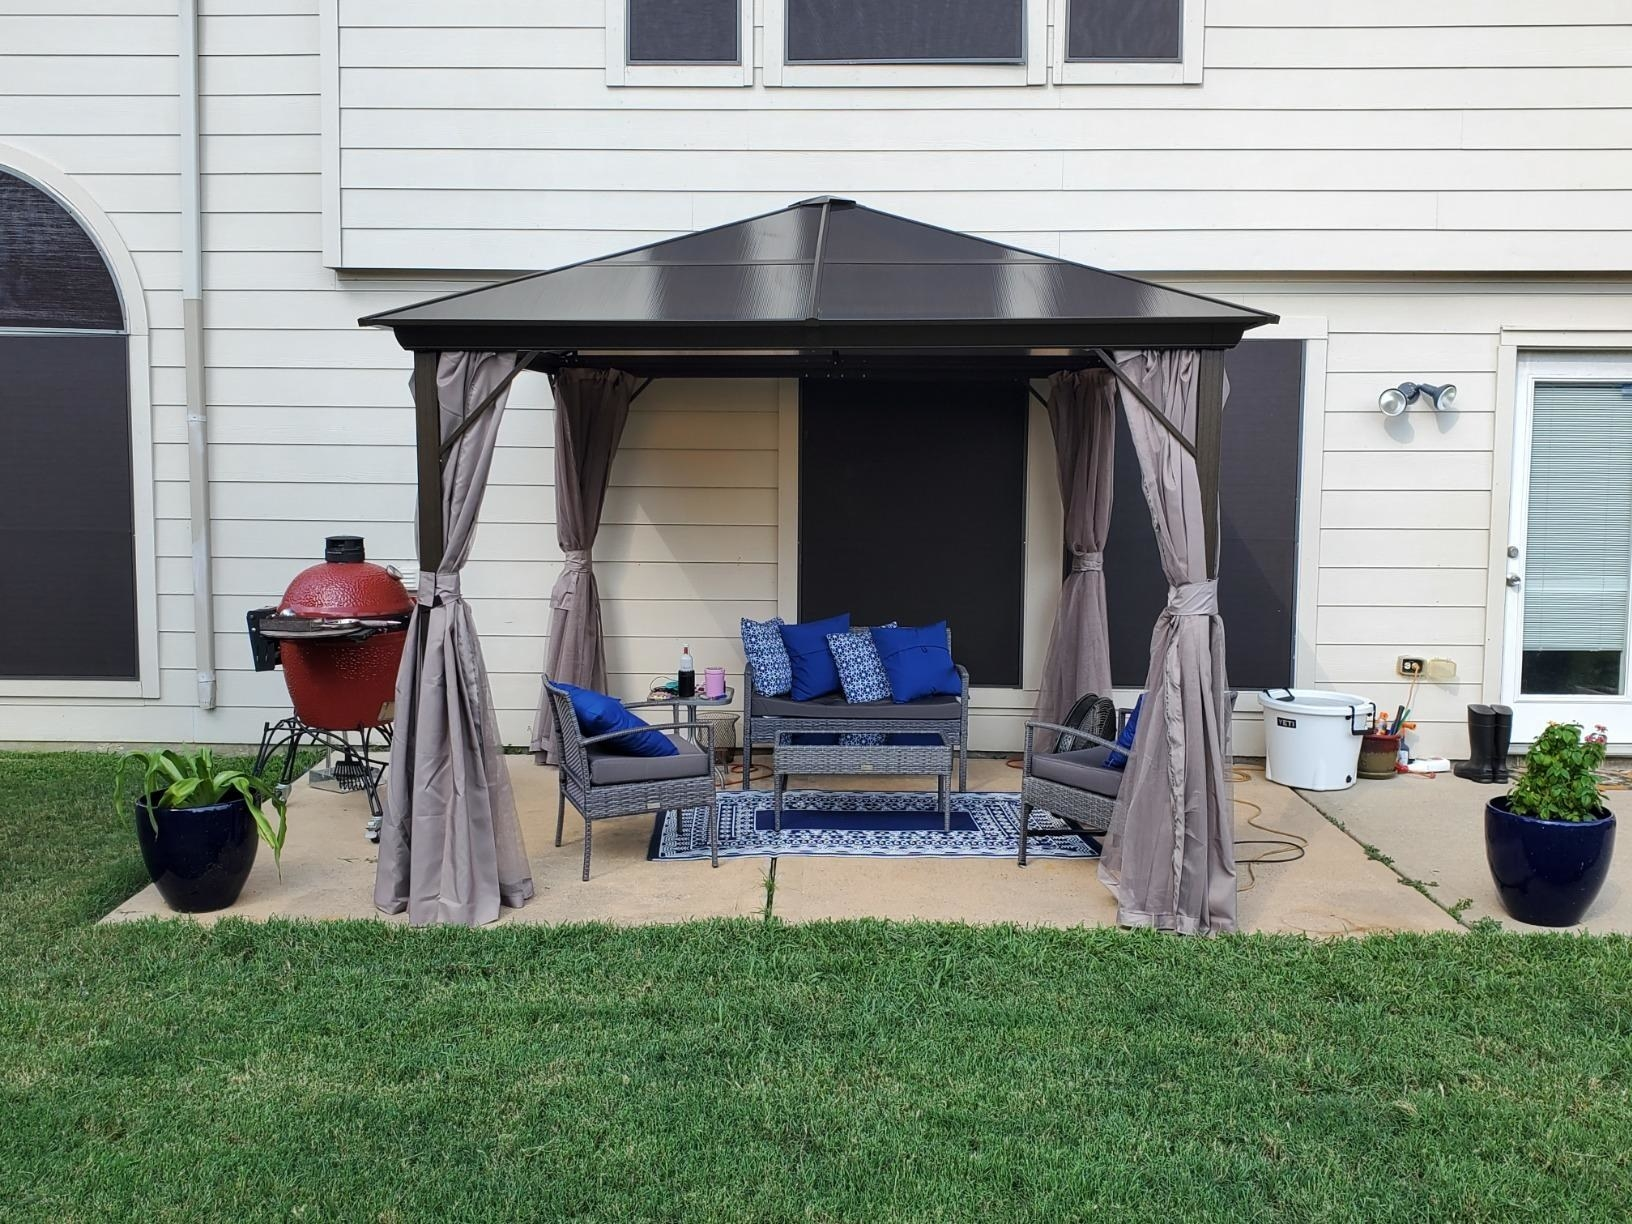 a gazebo with curtains tied back